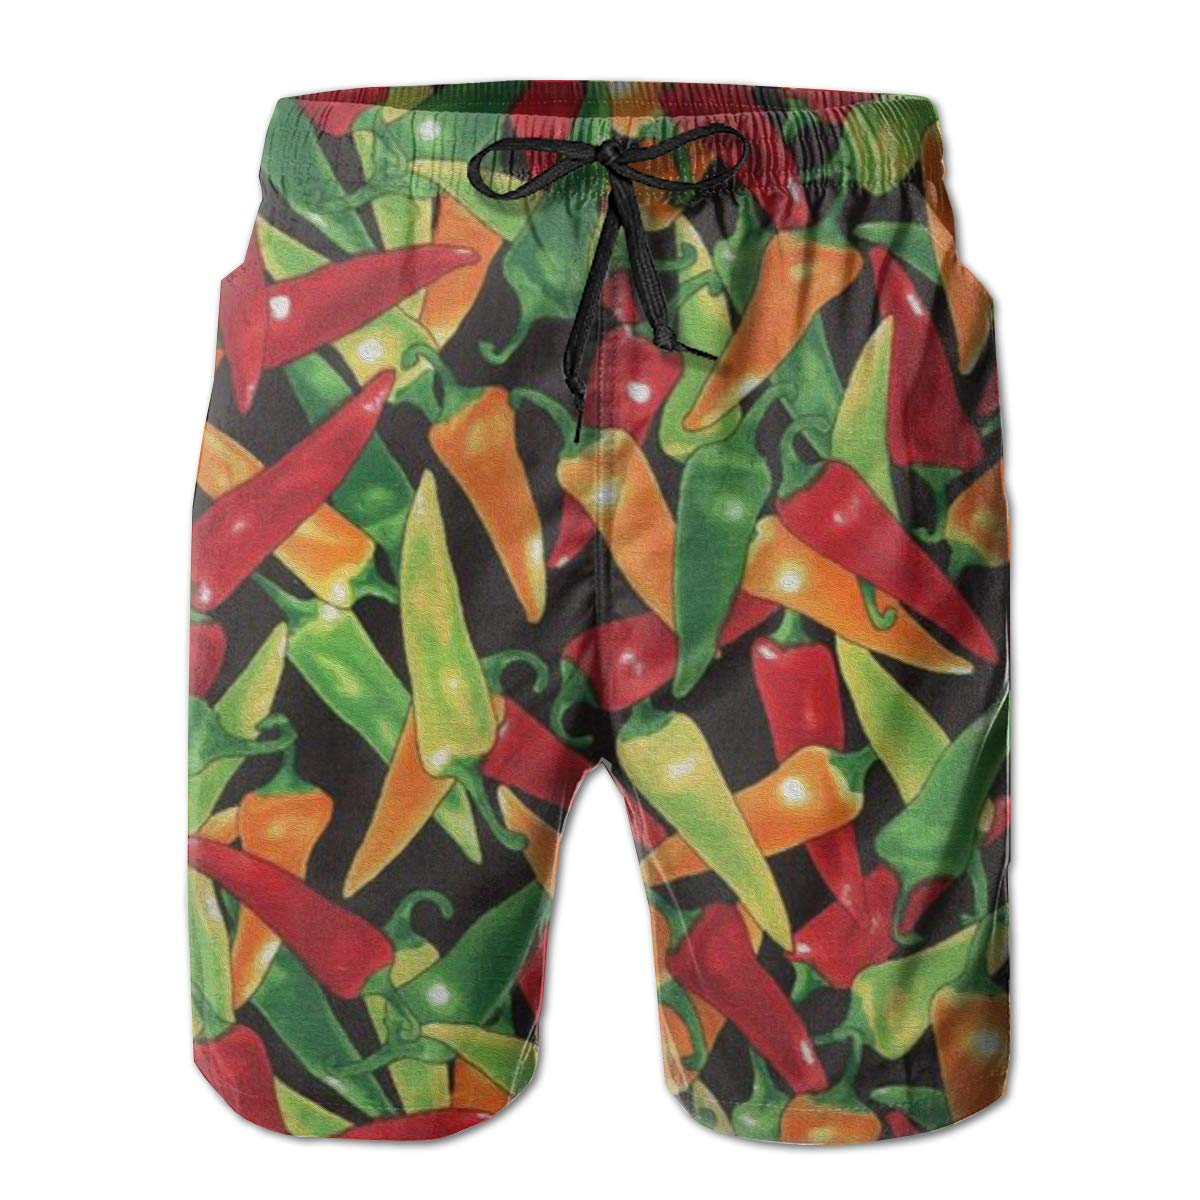 FASUWAVE Mens Swim Trunks Chili Quick Dry Beach Board Shorts with Mesh Lining